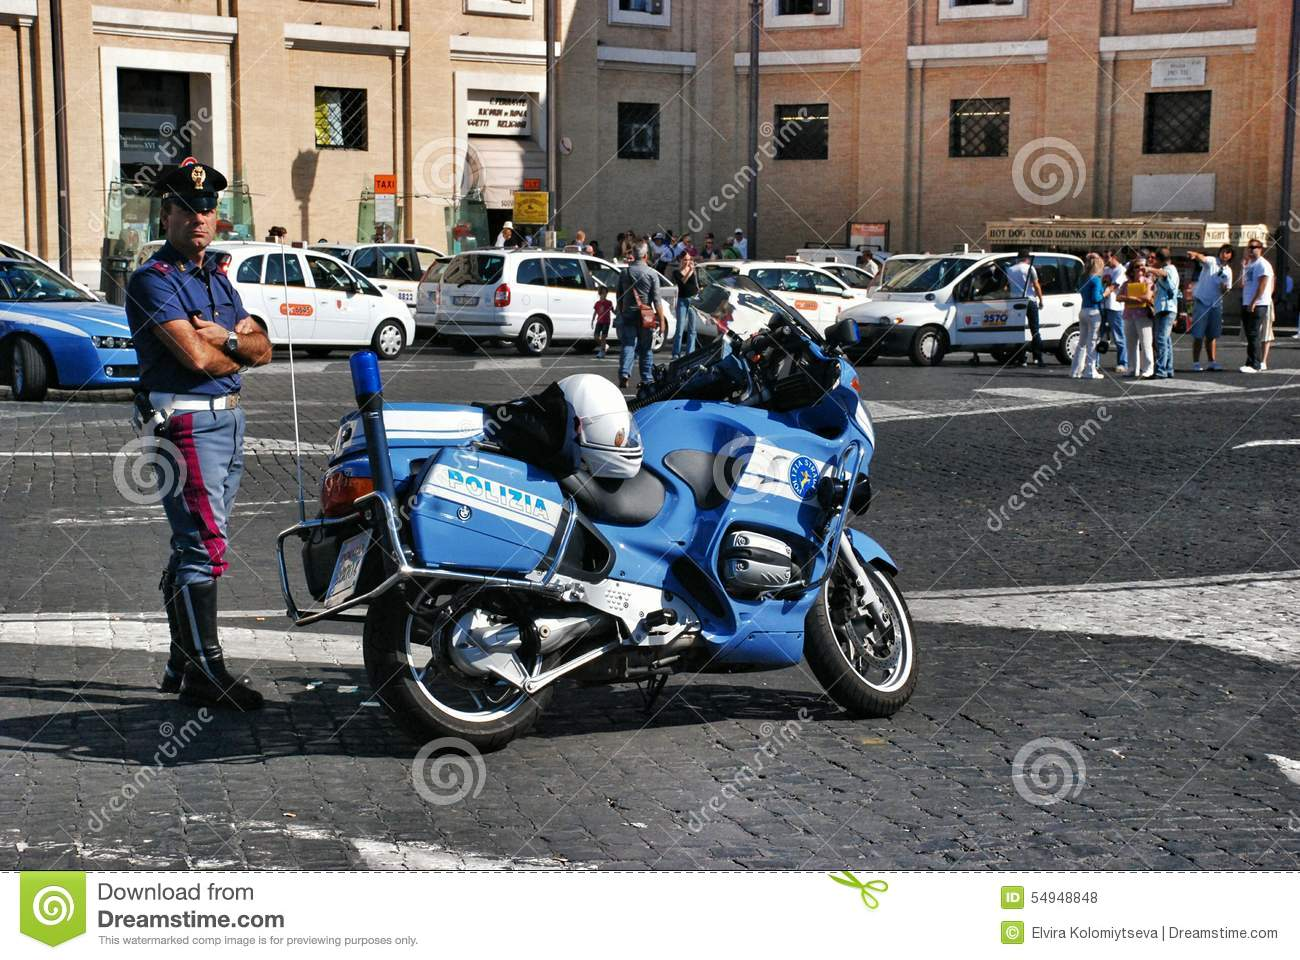 Italian police editorial stock photo. Image of famous - 54948848